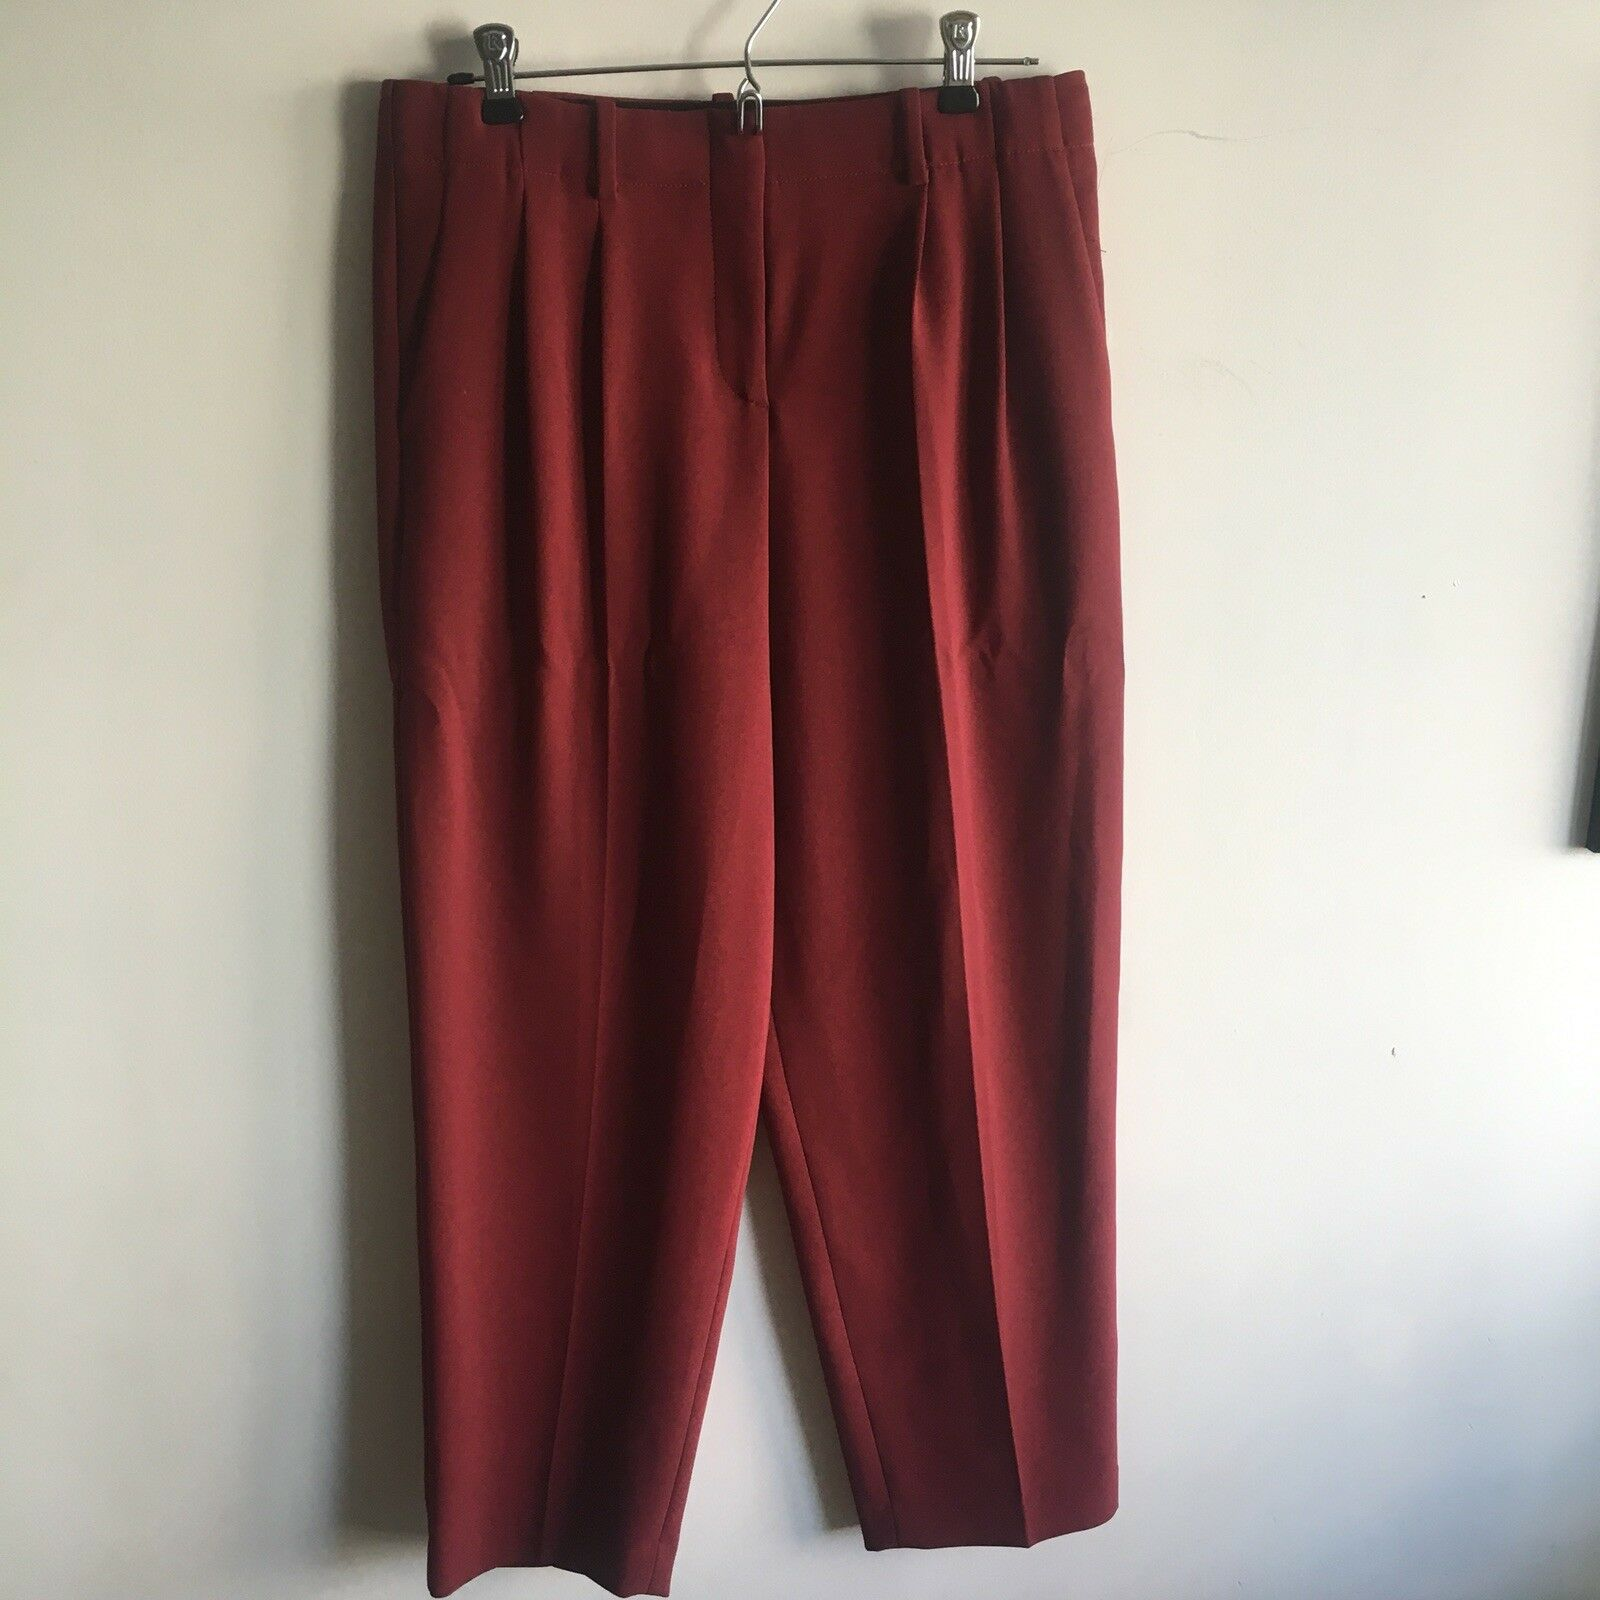 THEORY Women's Maroon Dress Pants Size 6 New Without Tags